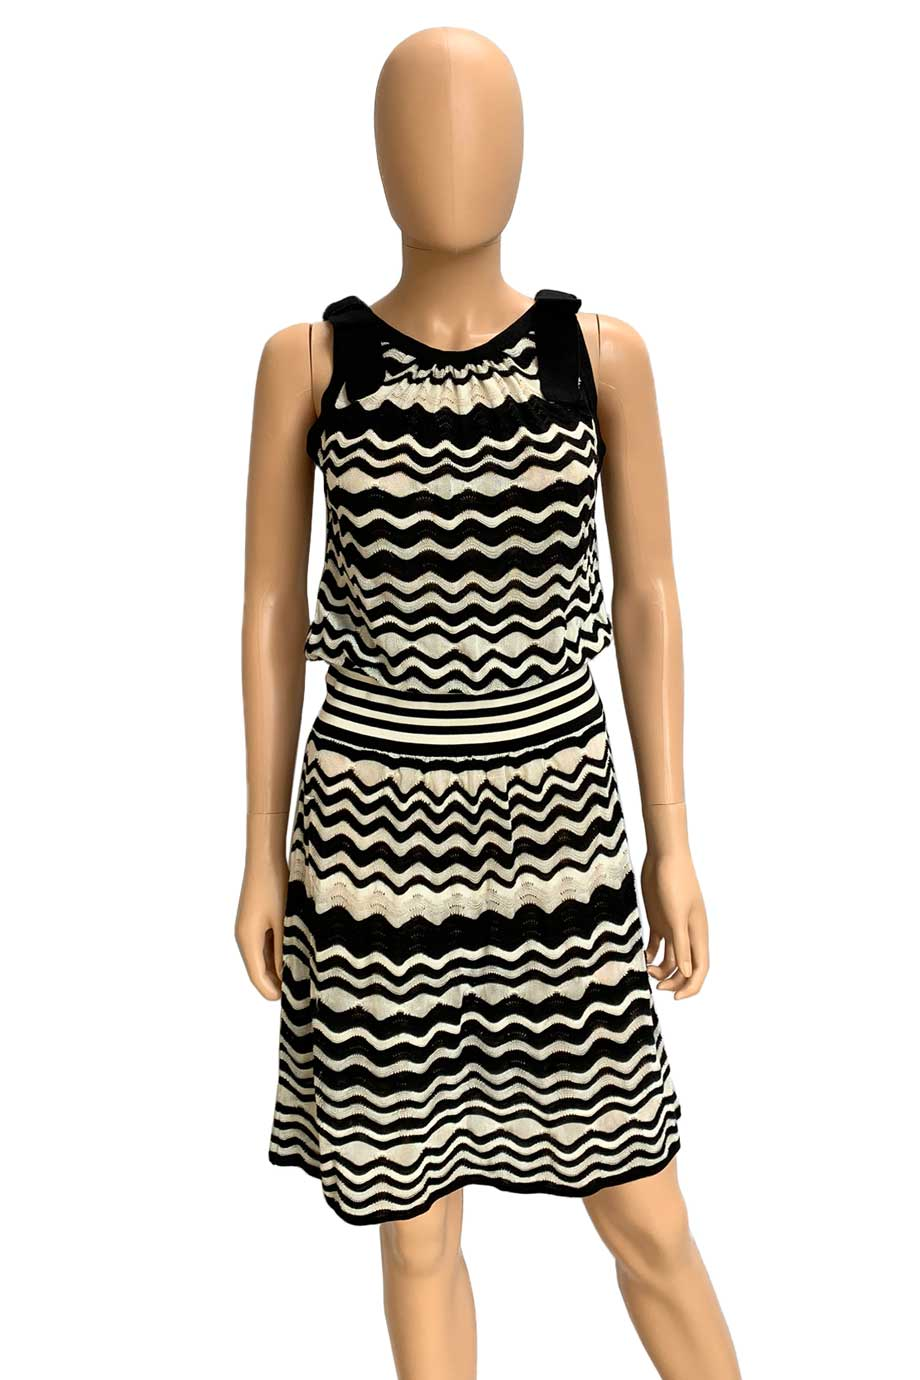 M Missoni Black + White Zig Zag Sleeveless Knit Dress / Sz 8